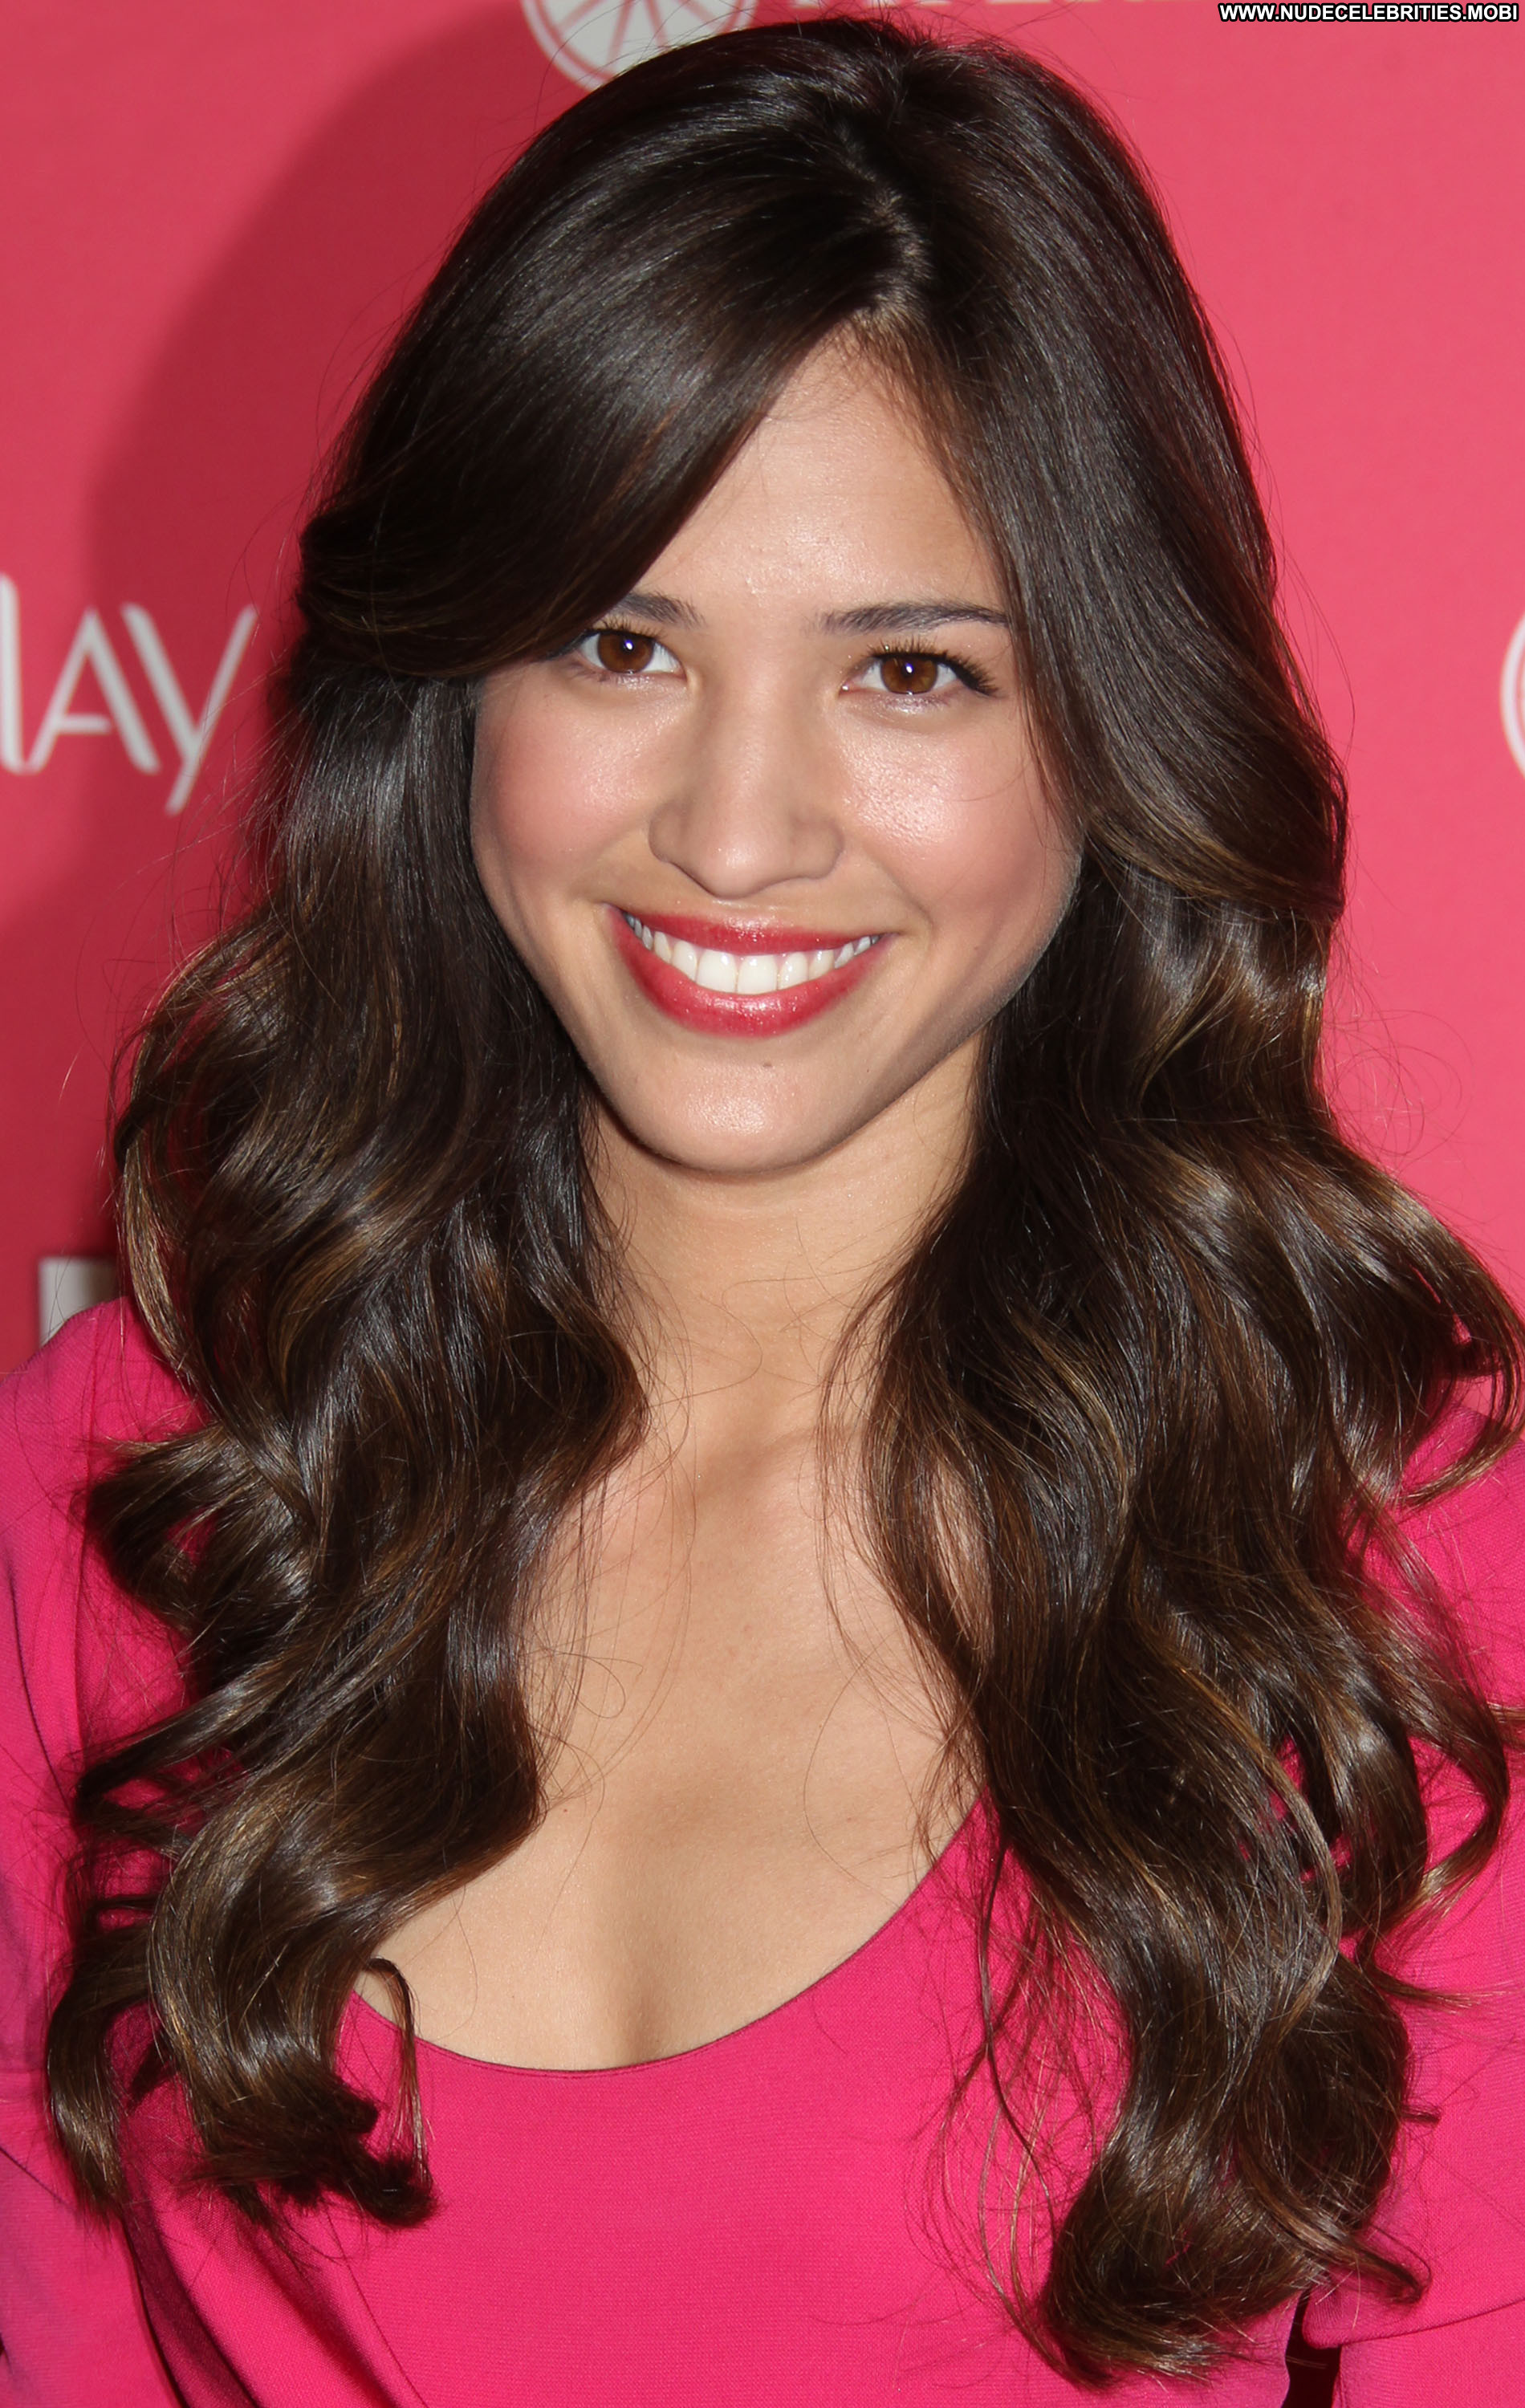 Kelsey Chow No Source Celebrity Beautiful Babe Posing Hot